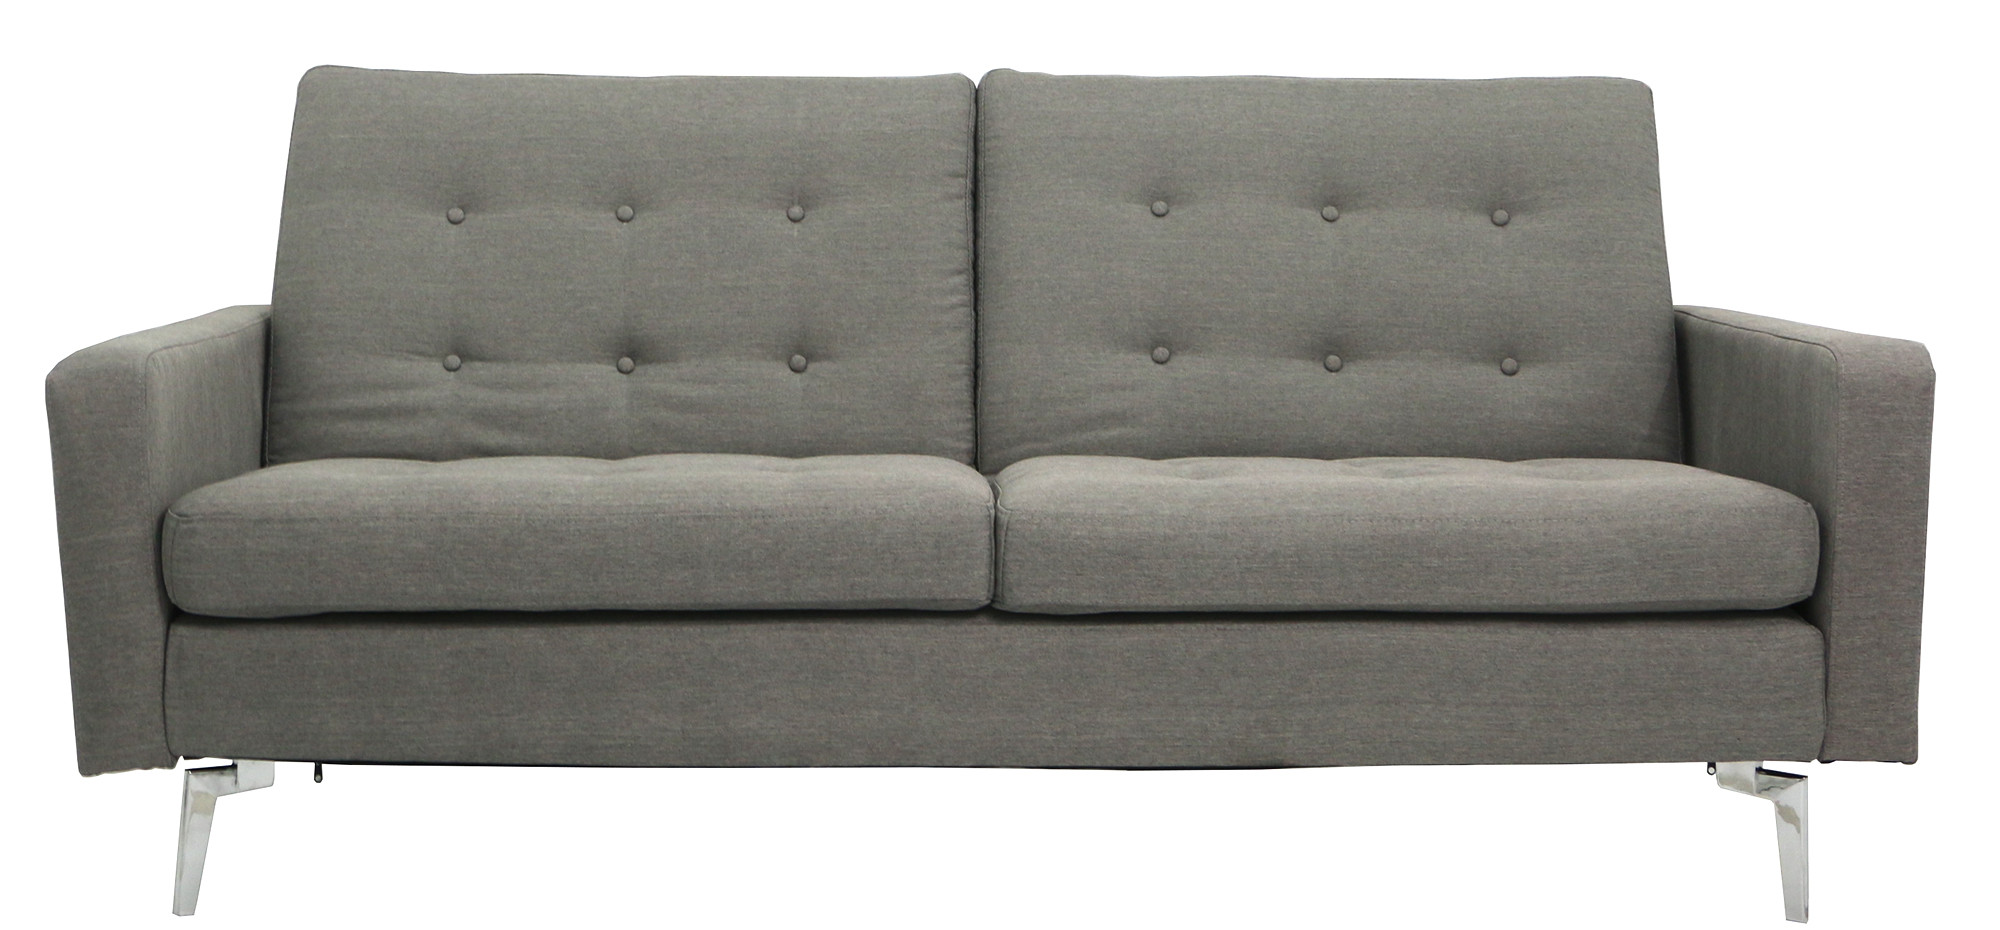 Filibert 3 Seater Sofa Bed Dark Grey